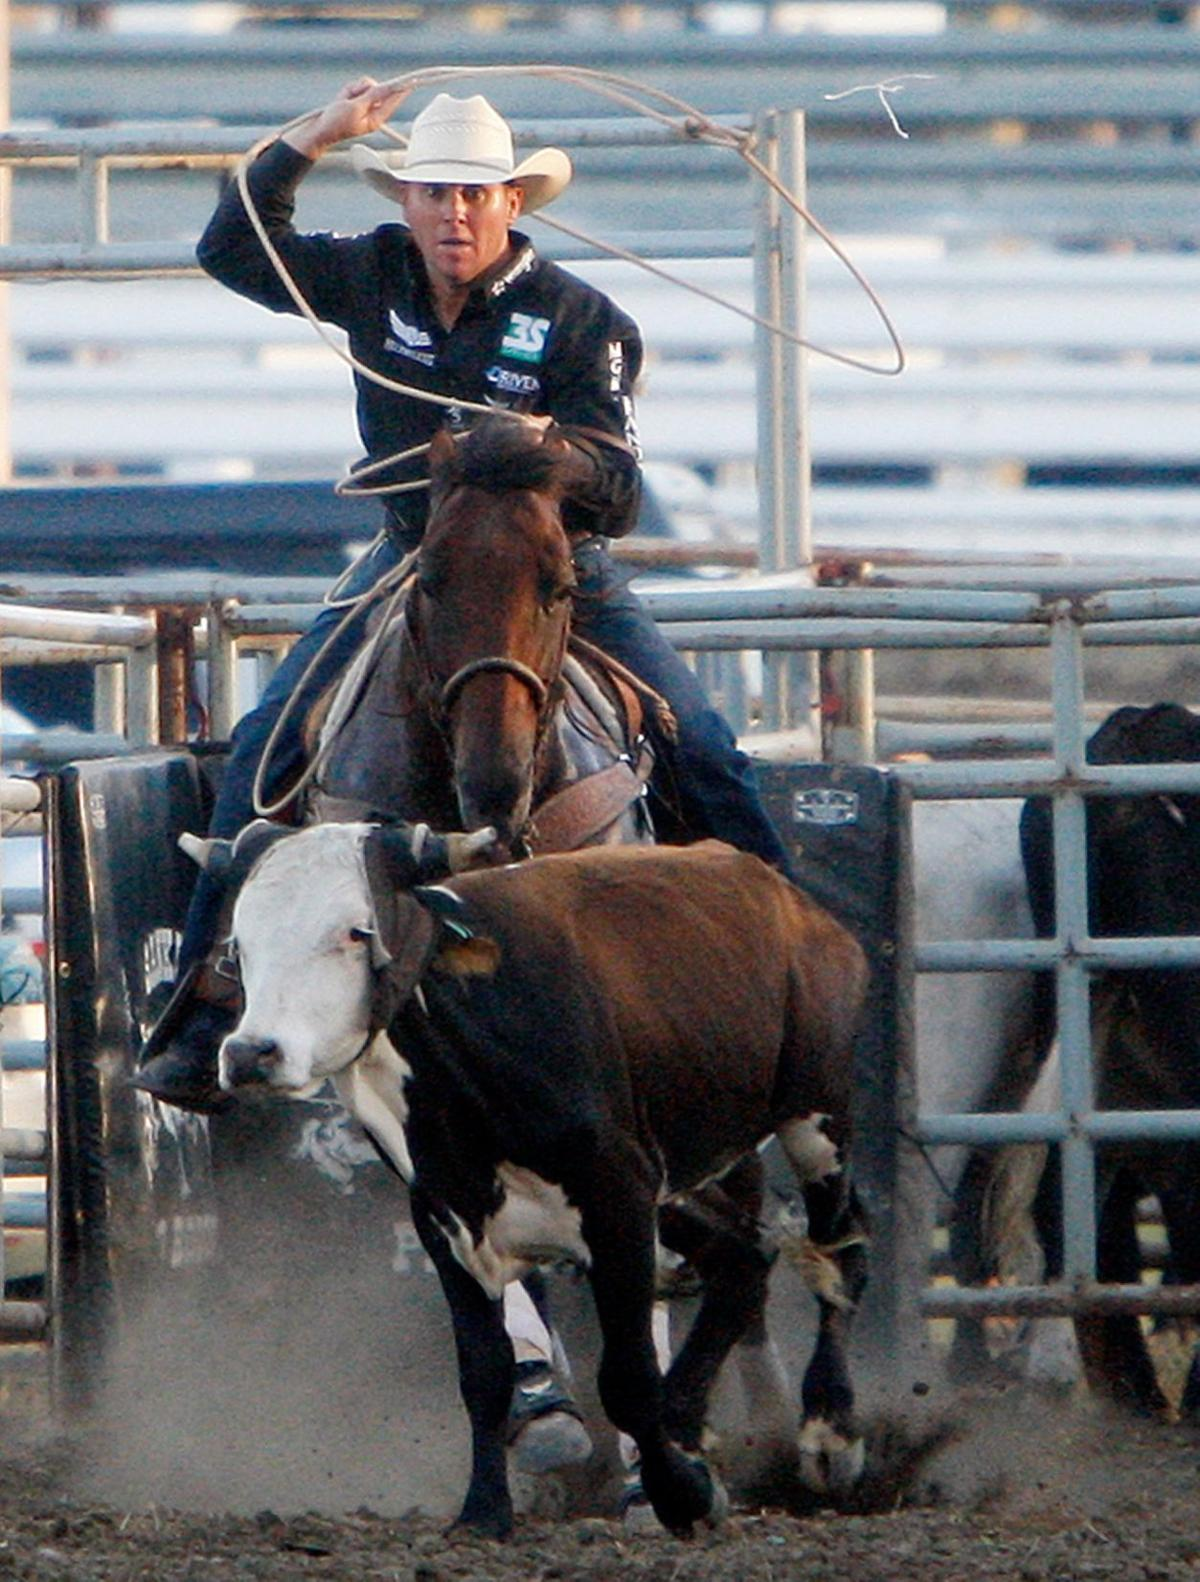 Trevor Brazile competes in the steer roping